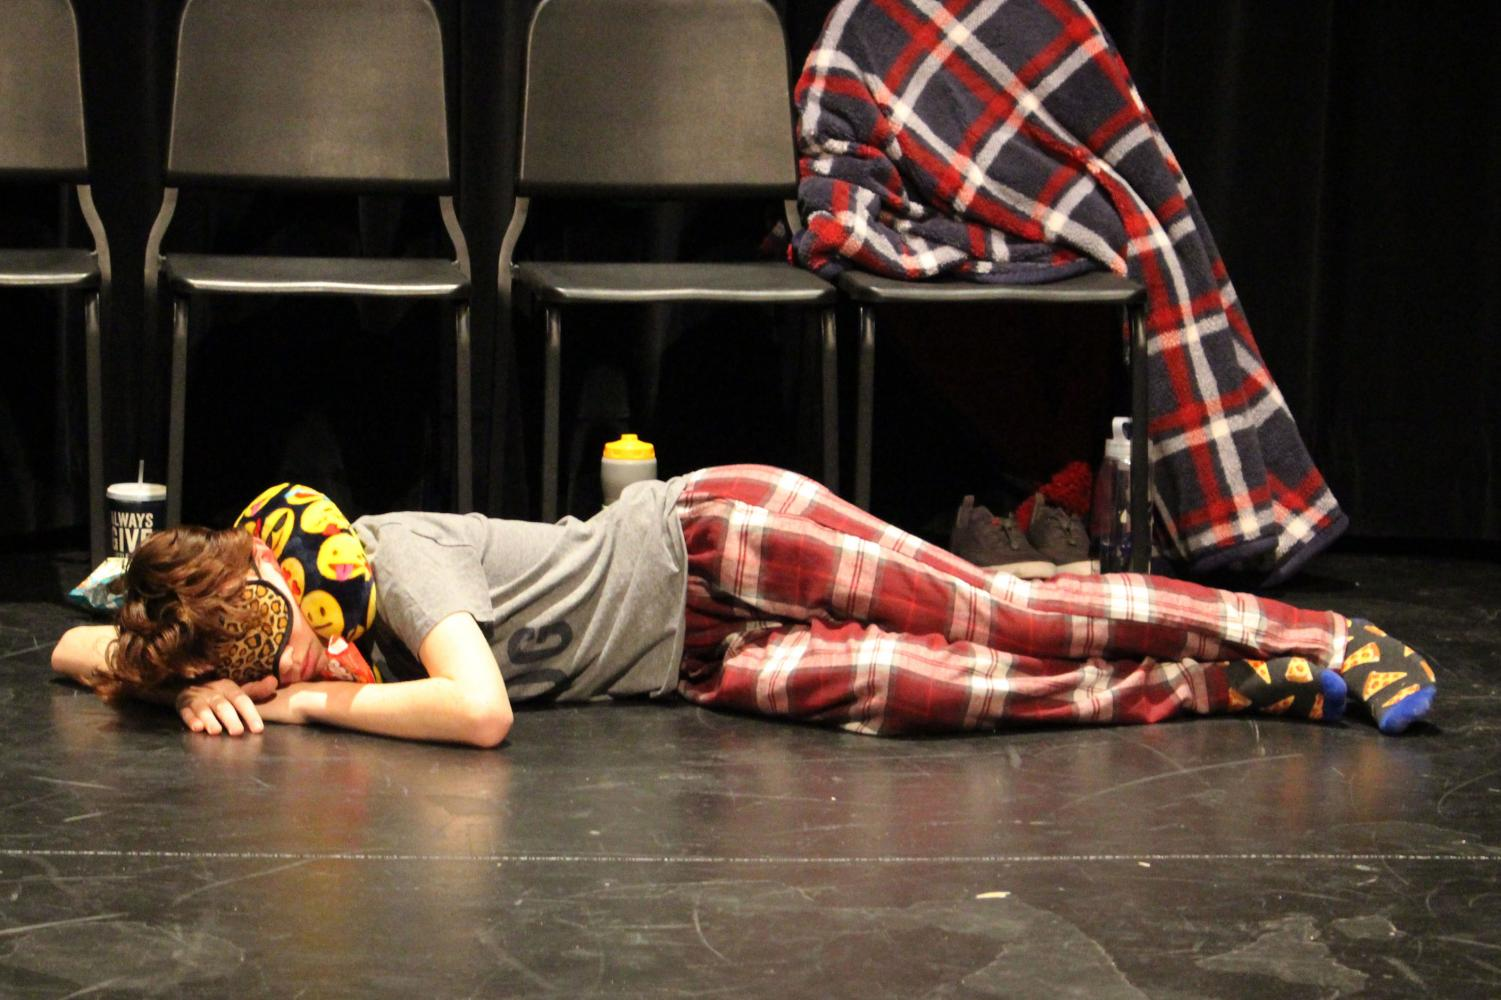 Jake+Zeitner+demonstrating+his+role+as+sloth+by+sleeping+throughout+intermission.